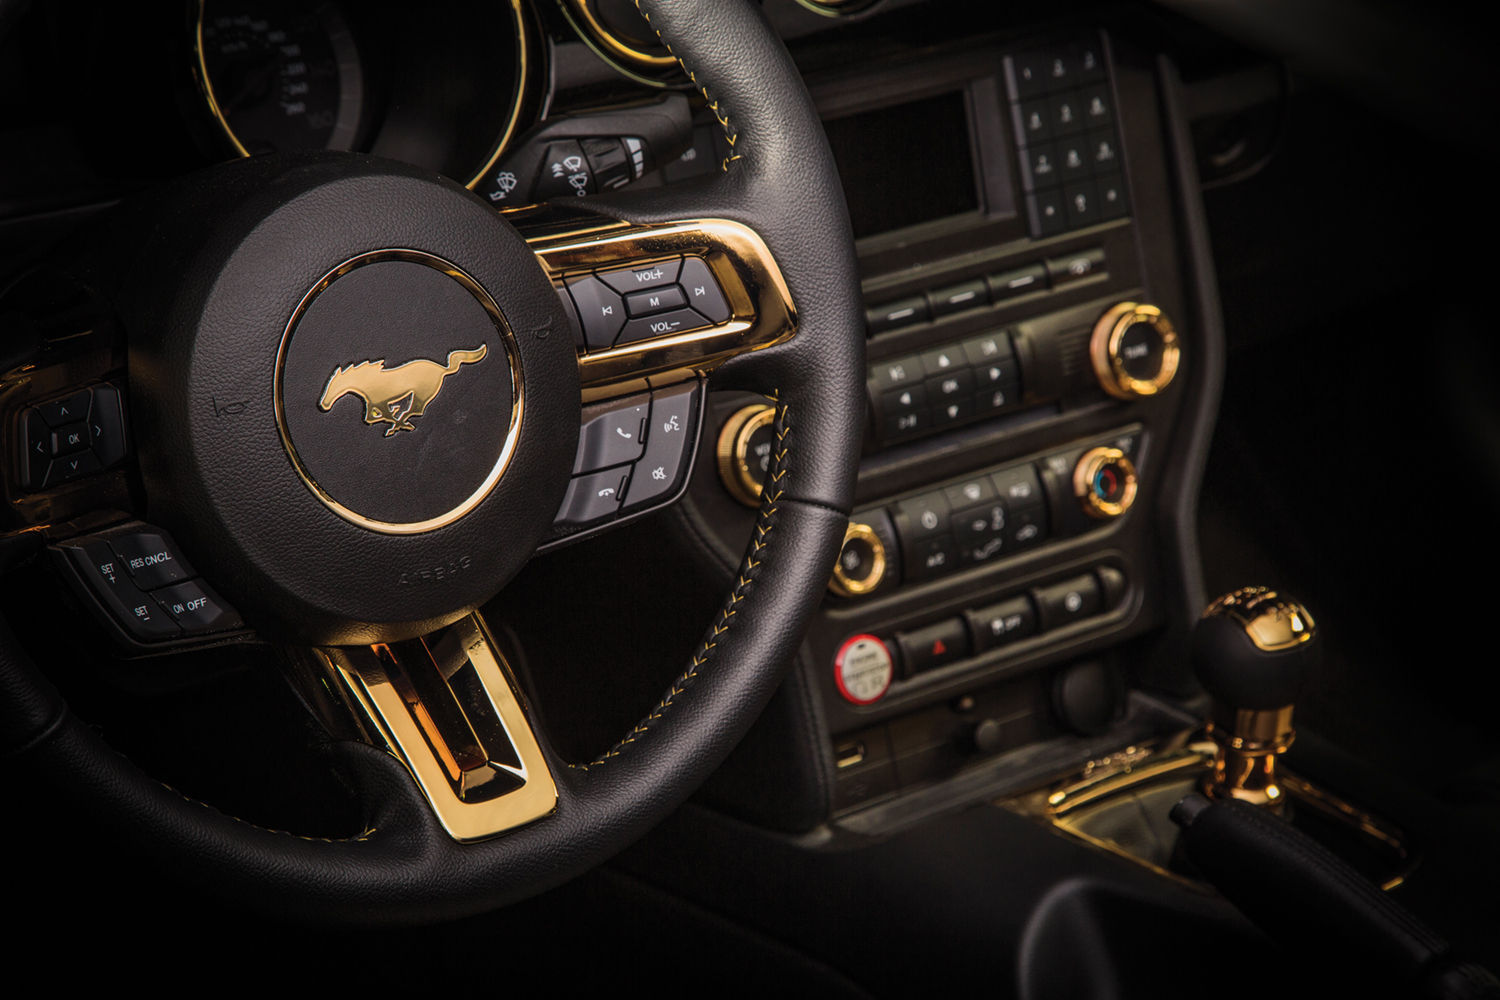 2015 Ford Mustang | 2015 Black Gold Mustang Interior